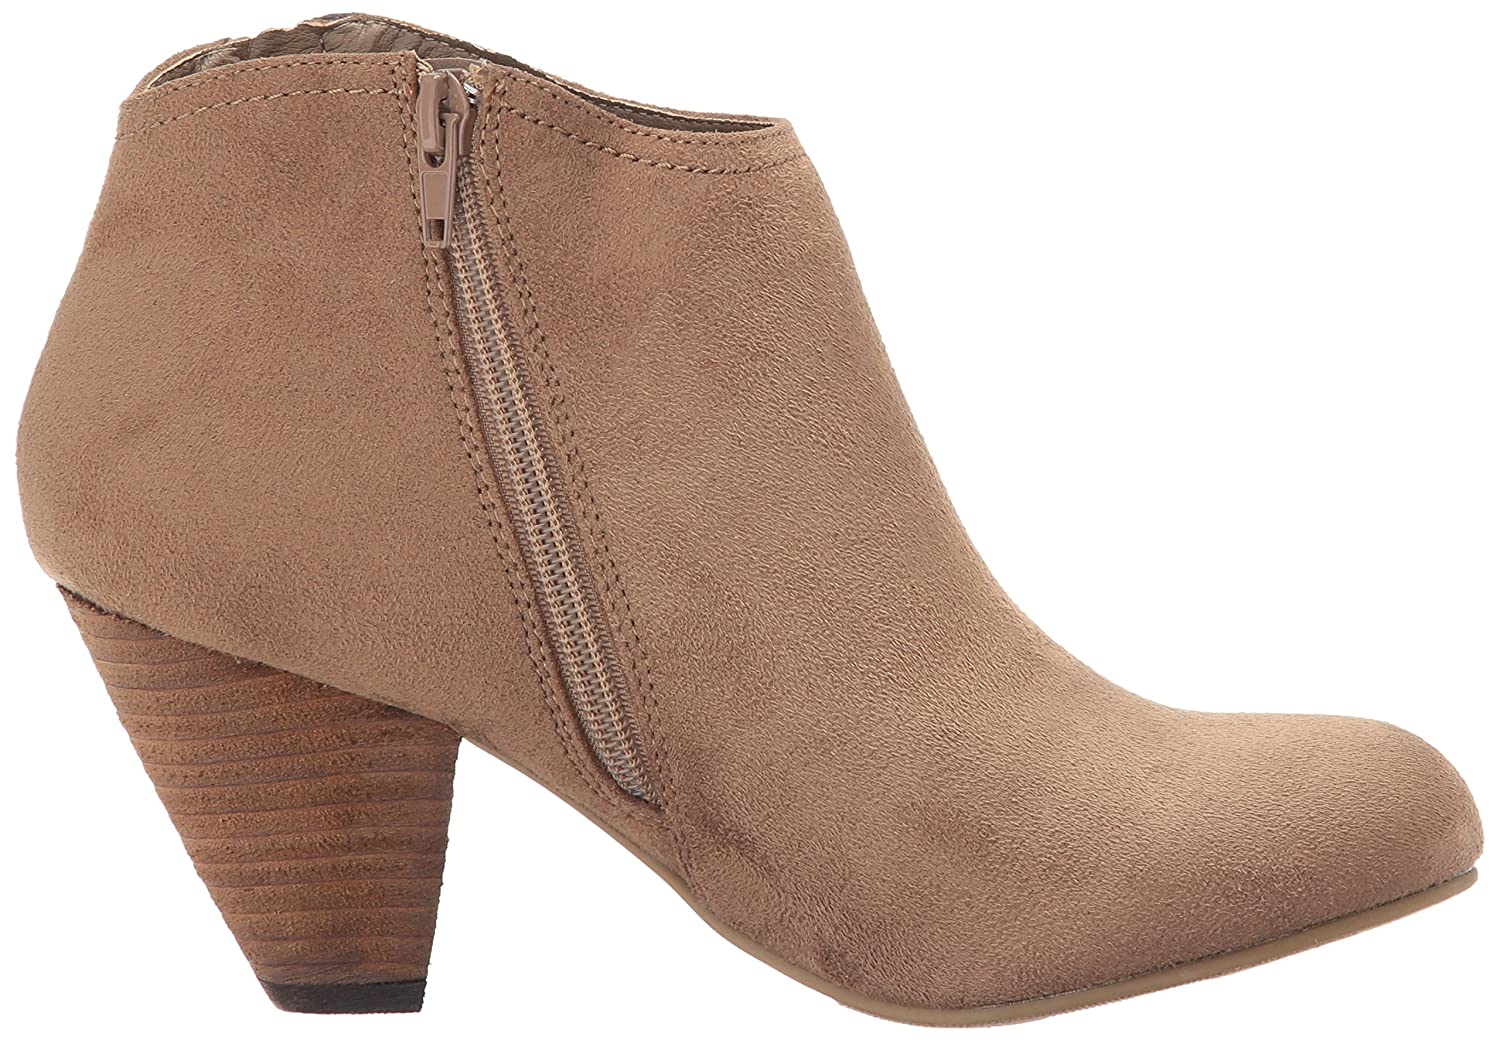 XOXO Women's Amberly Ankle Bootie B071173F3Q 5.5 B(M) US|Taupe